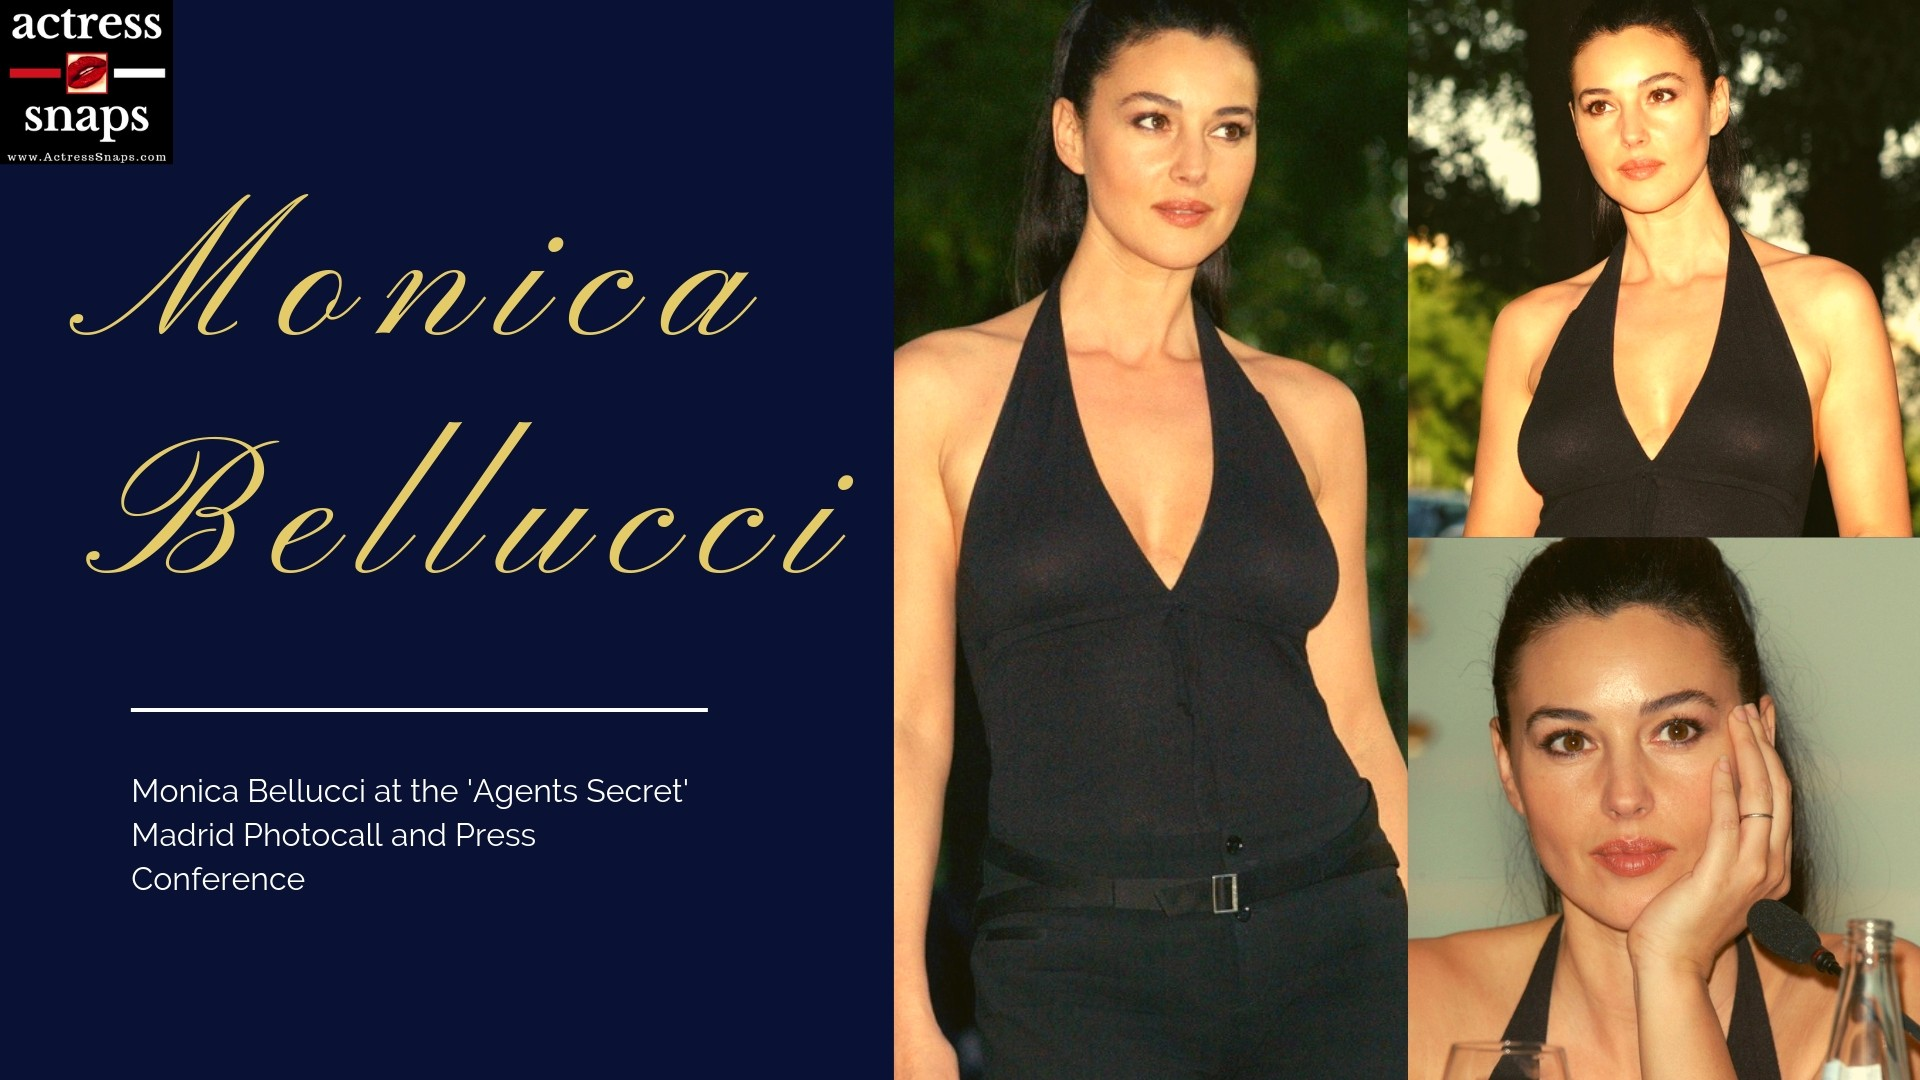 Monica Bellucci at the Agents Secret Photocall - Sexy Actress Pictures | Hot Actress Pictures - ActressSnaps.com